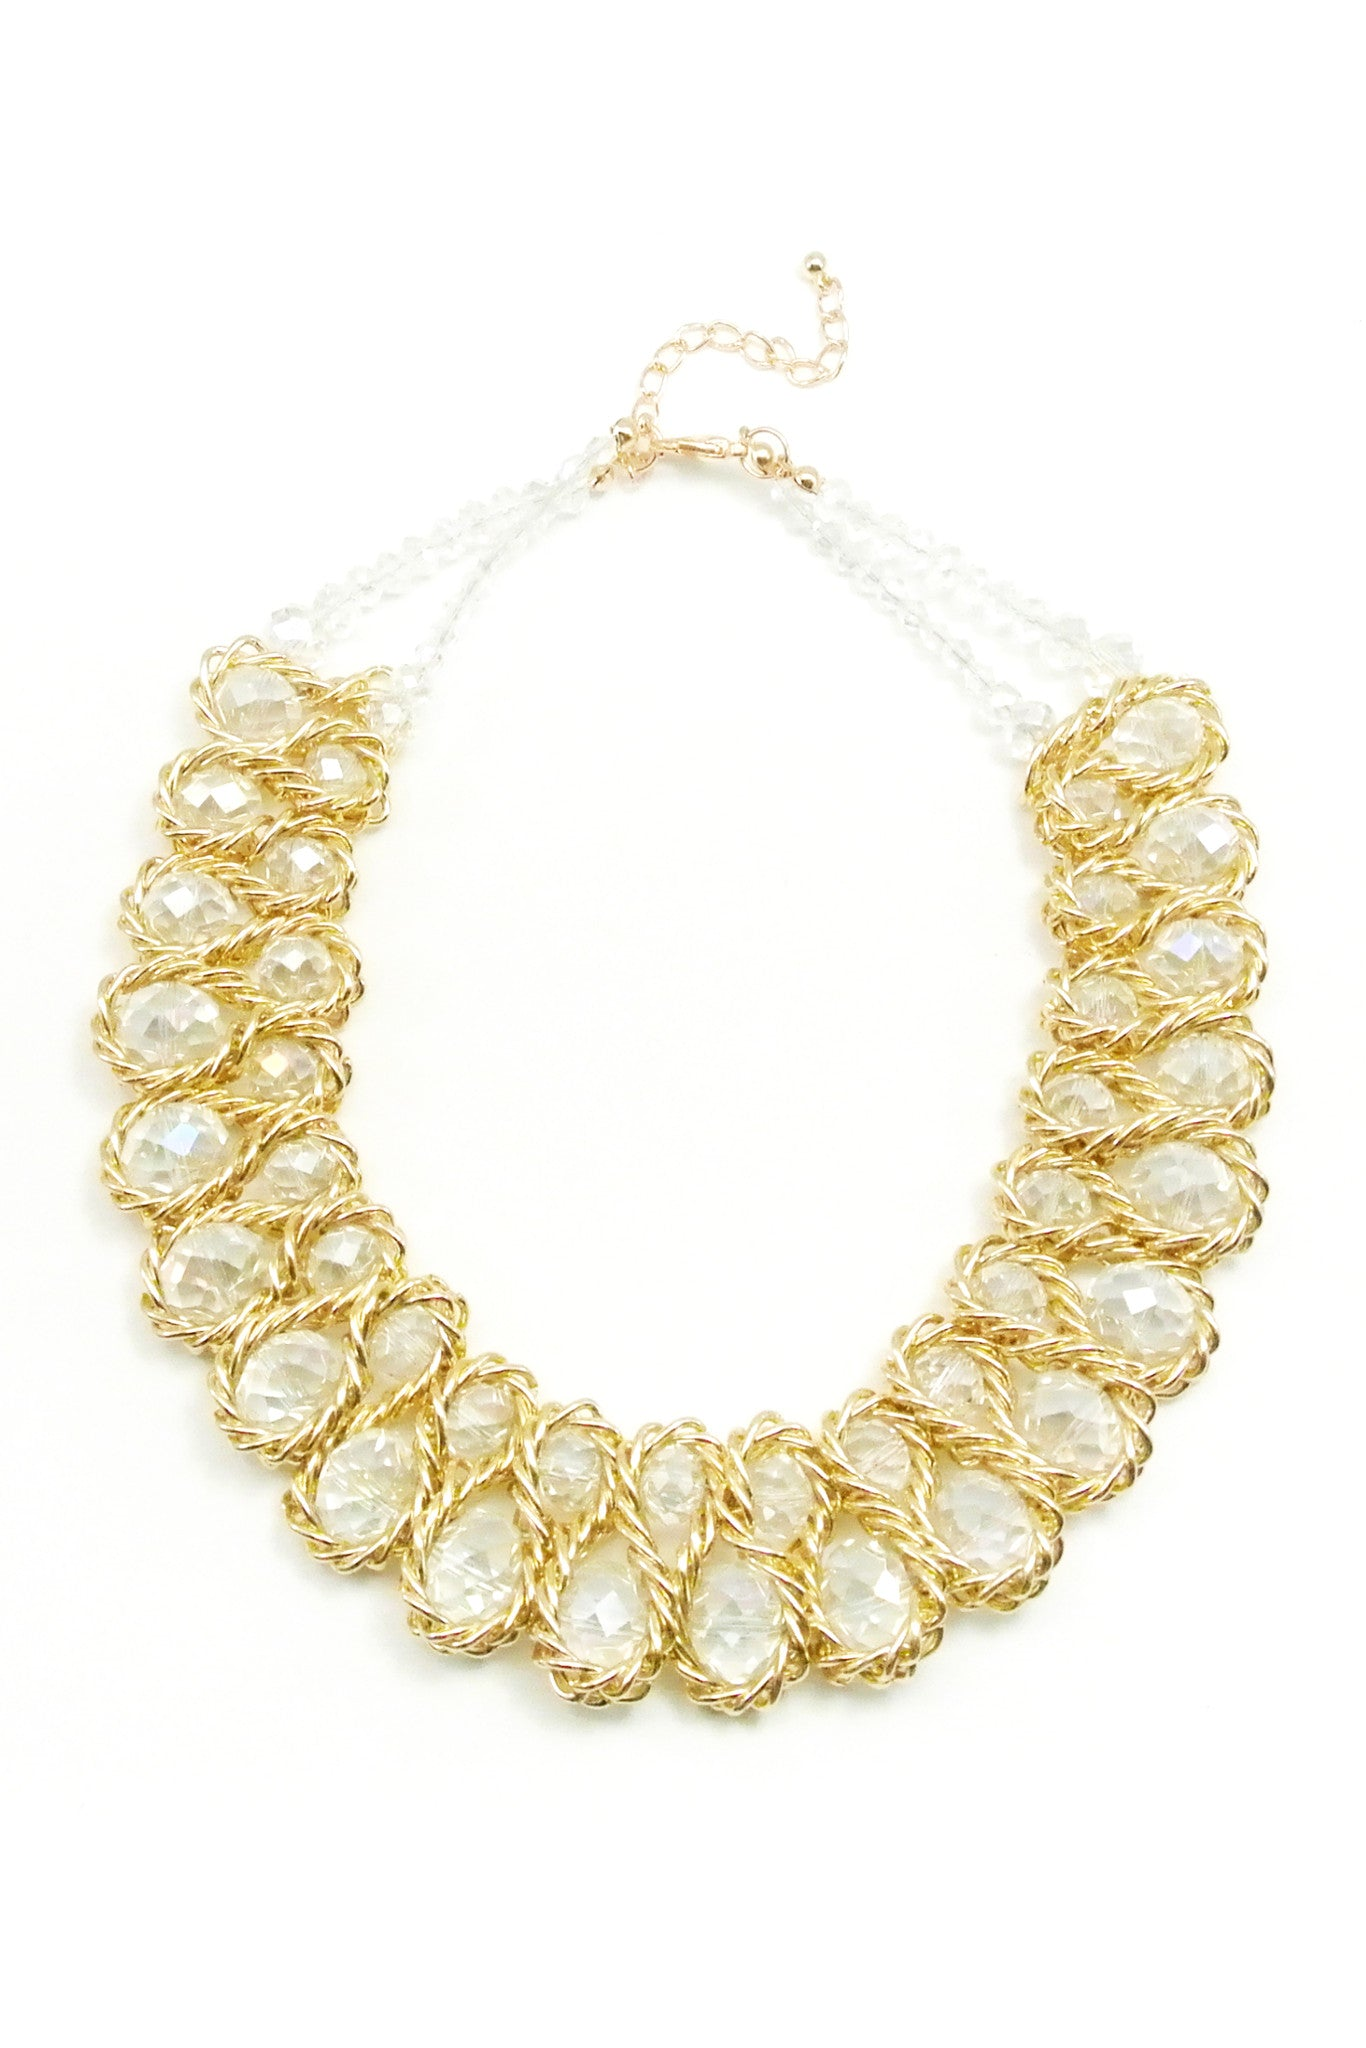 Twisted Caramel Collar - Clear